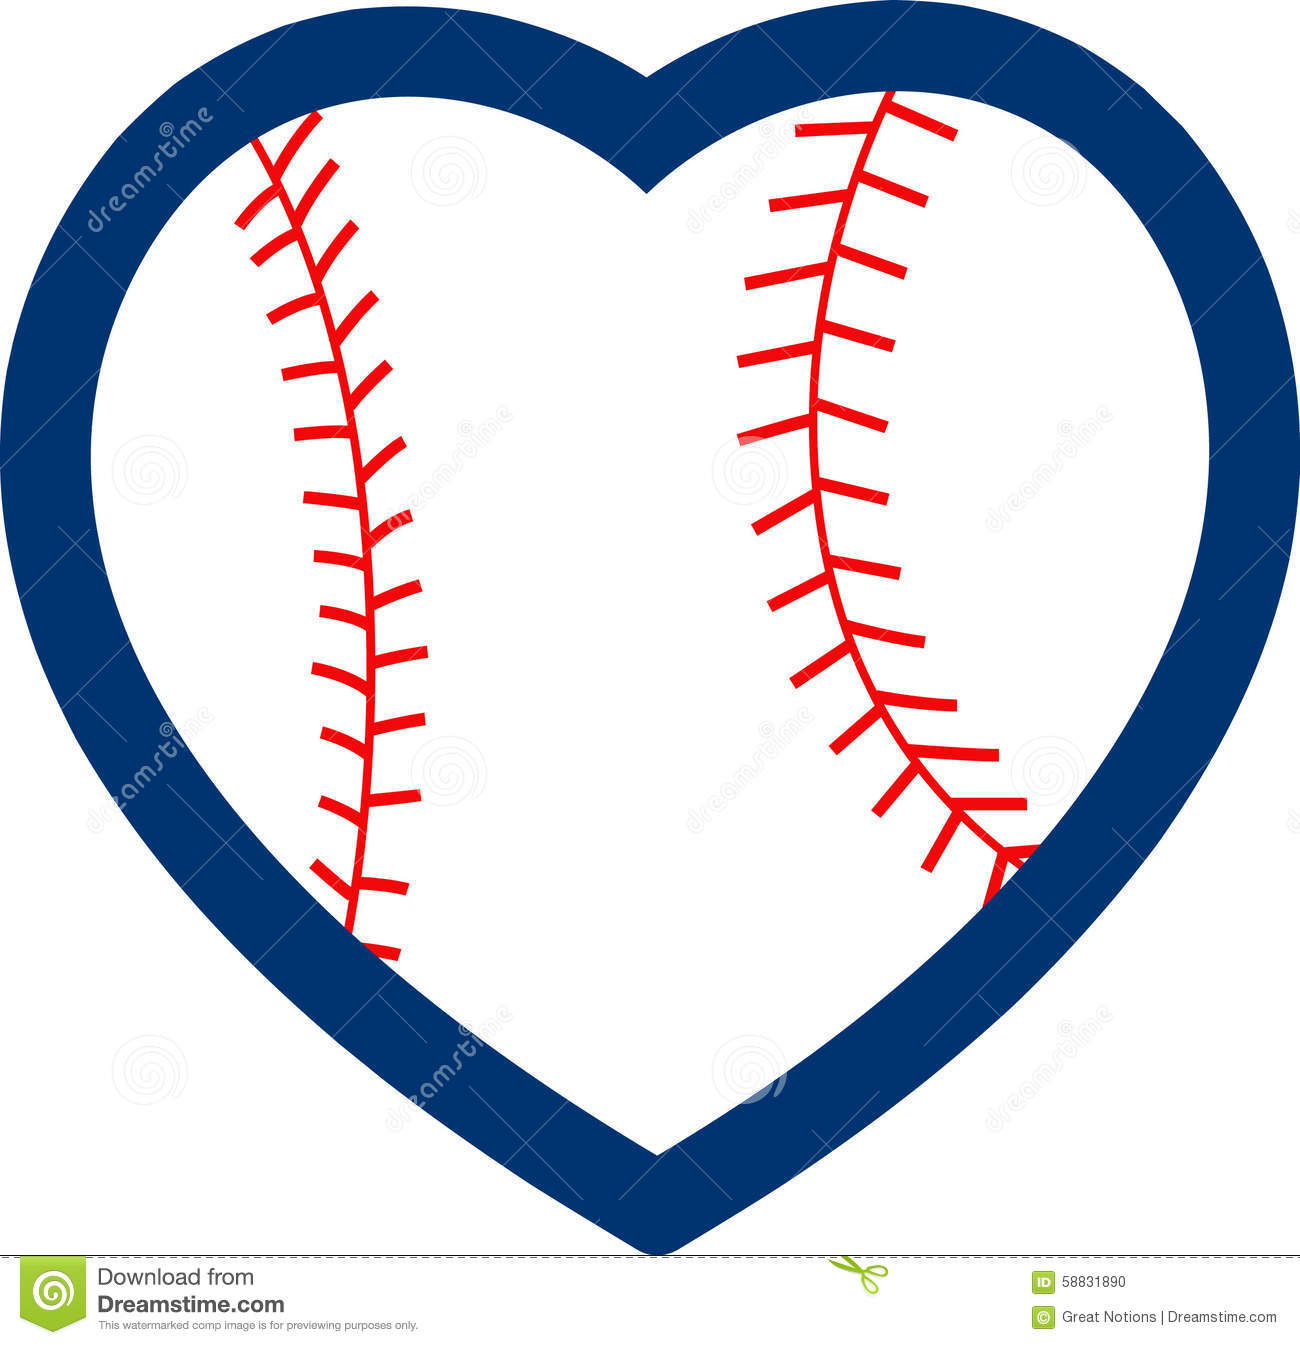 Stock Photo: BASEBALL HEART. Image: 58831890